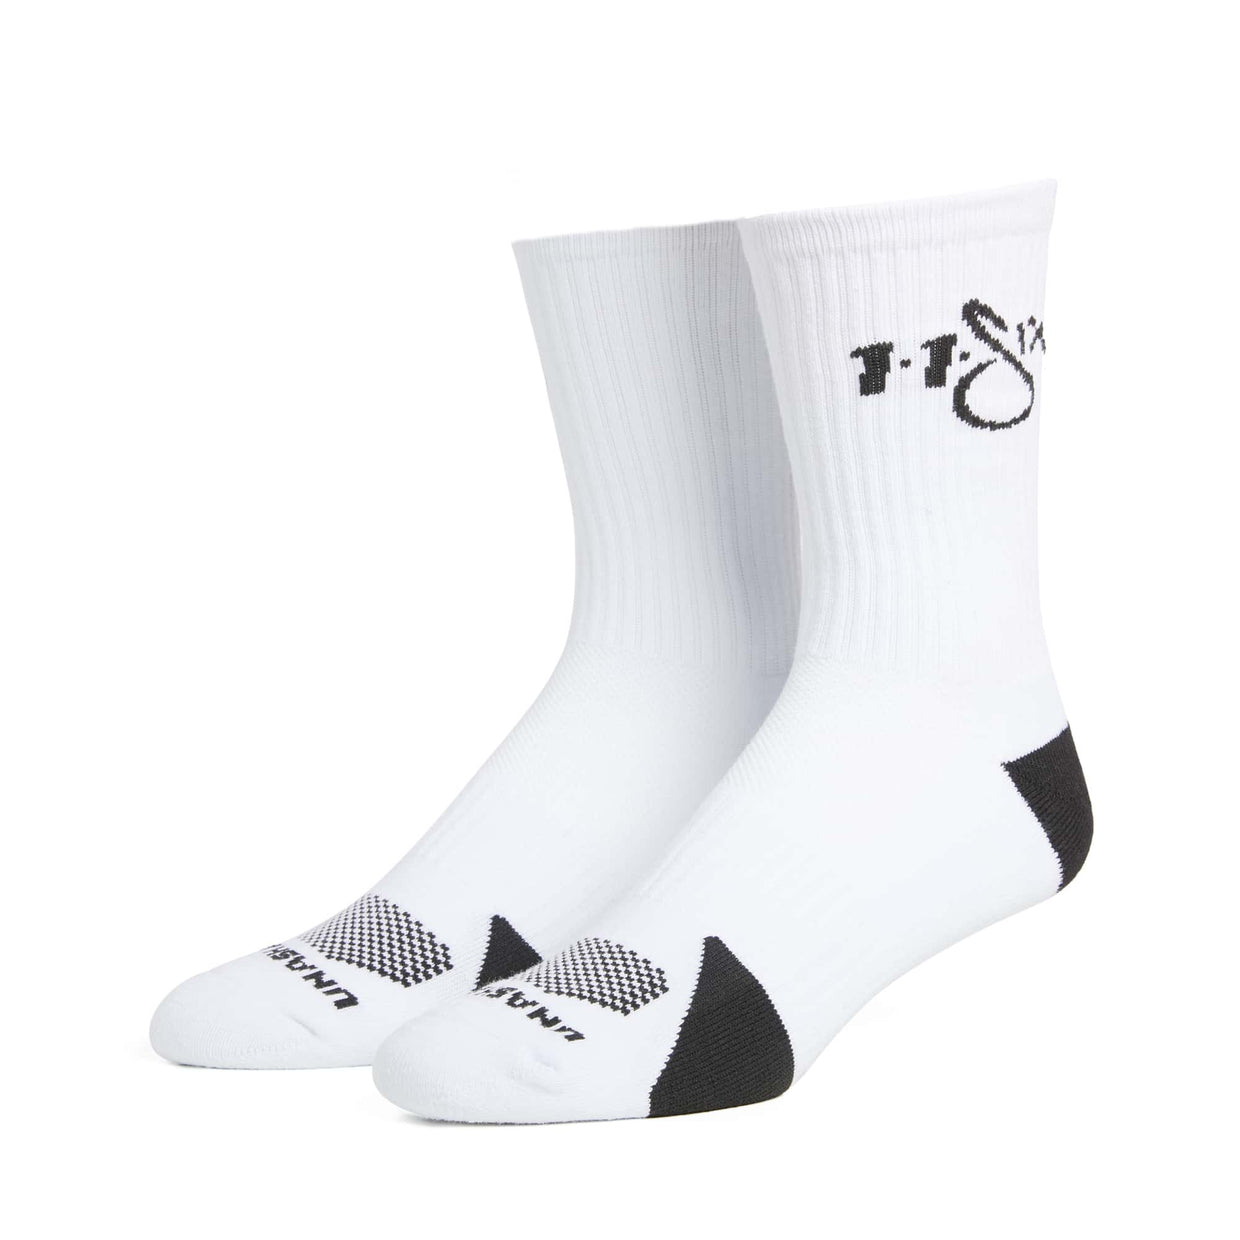 'Unashamed' Socks - White & Black